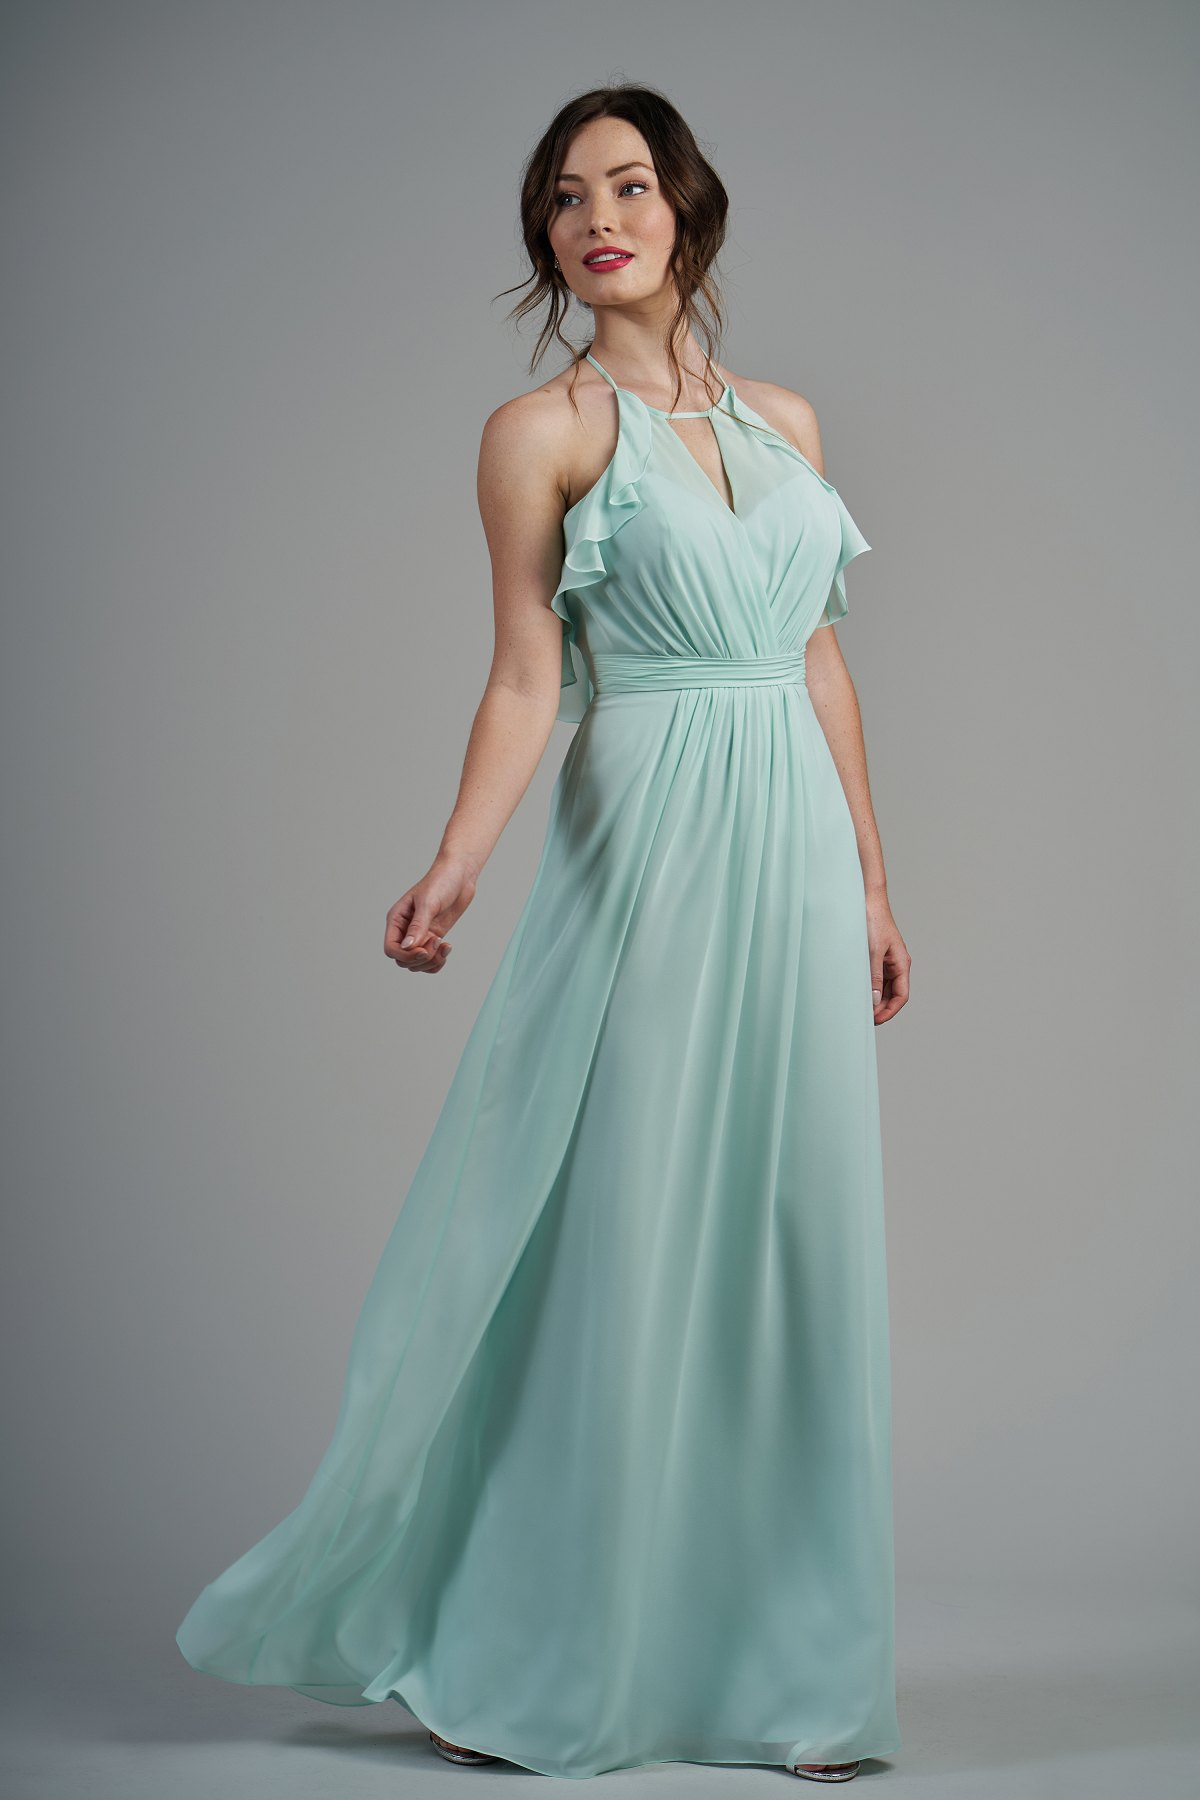 B213001 -  Pretty poly chiffon floor length bridesmaid dress with a keyhole jewel neckline and low V back. Beautiful ruffle details on the bodice and detailed gathers throughout the dress.    Available in 60 colors